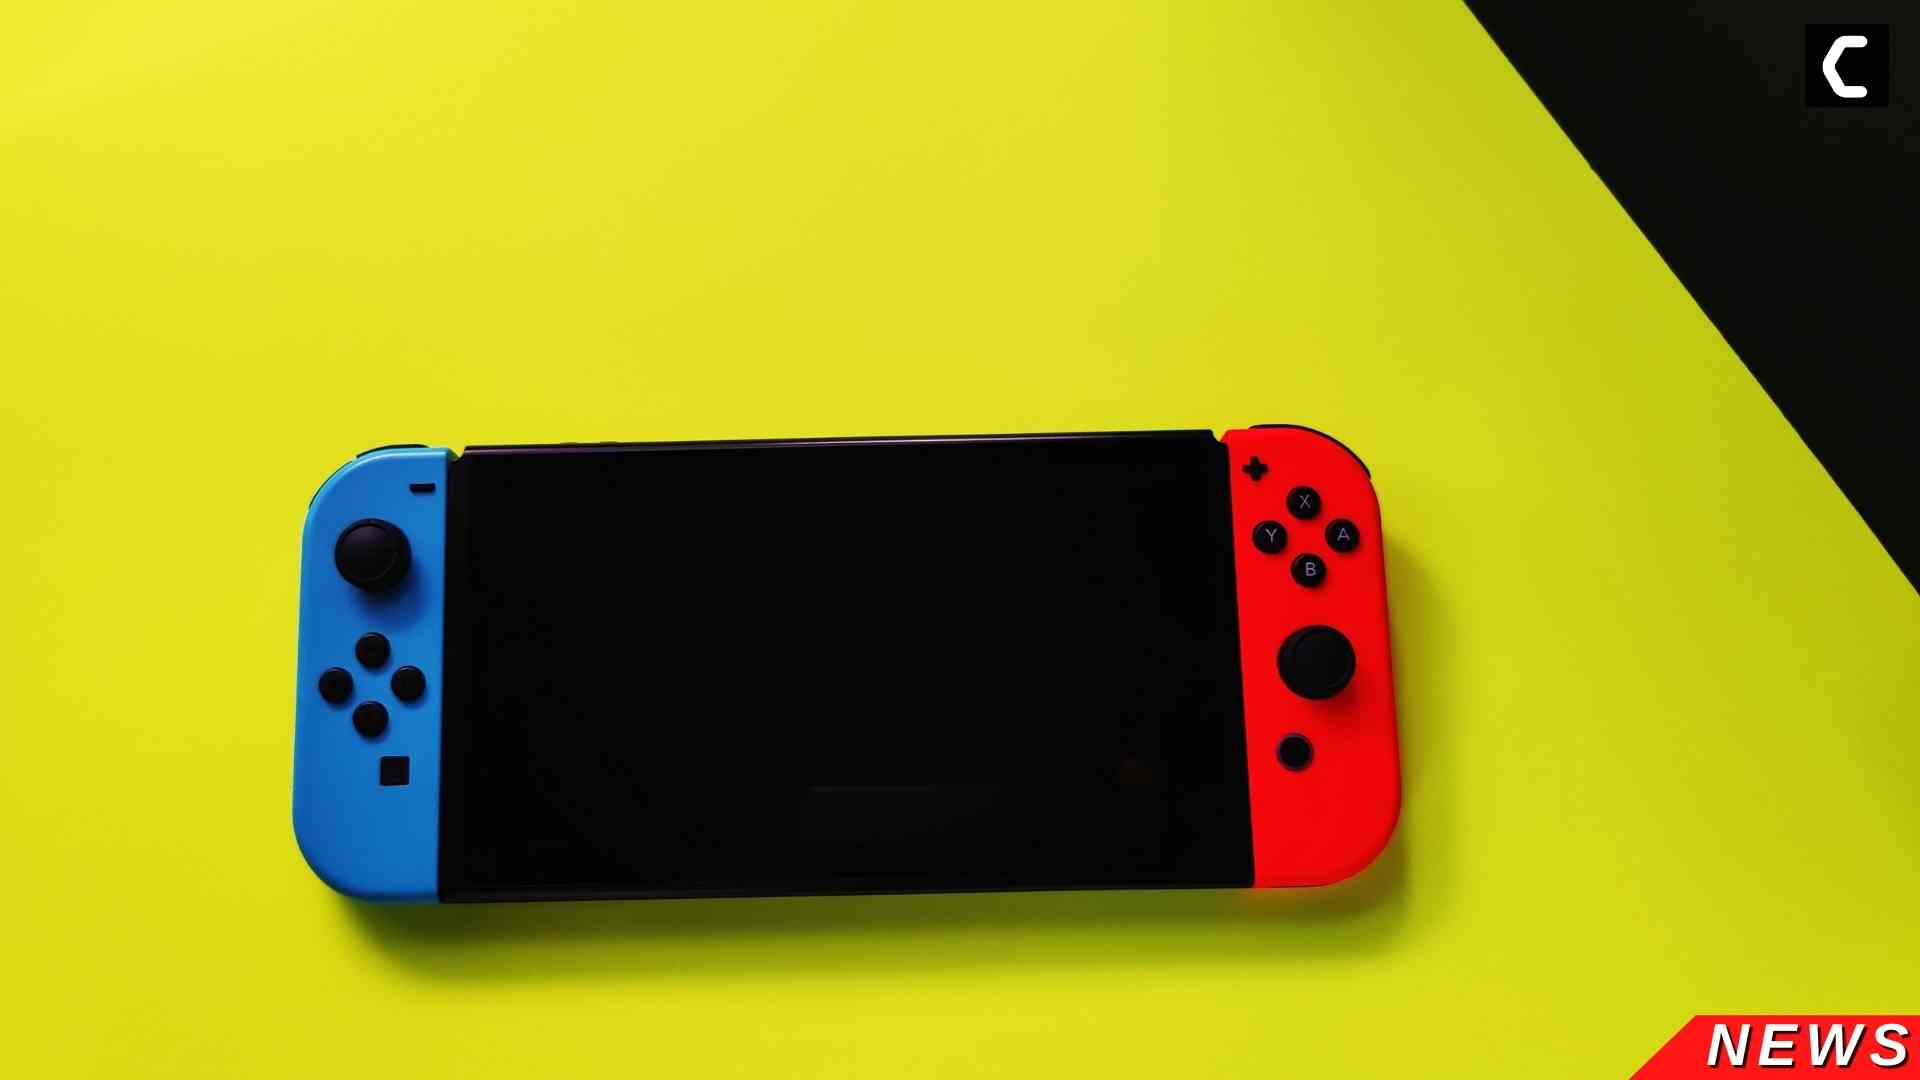 Nintendo Switch price is going down soon